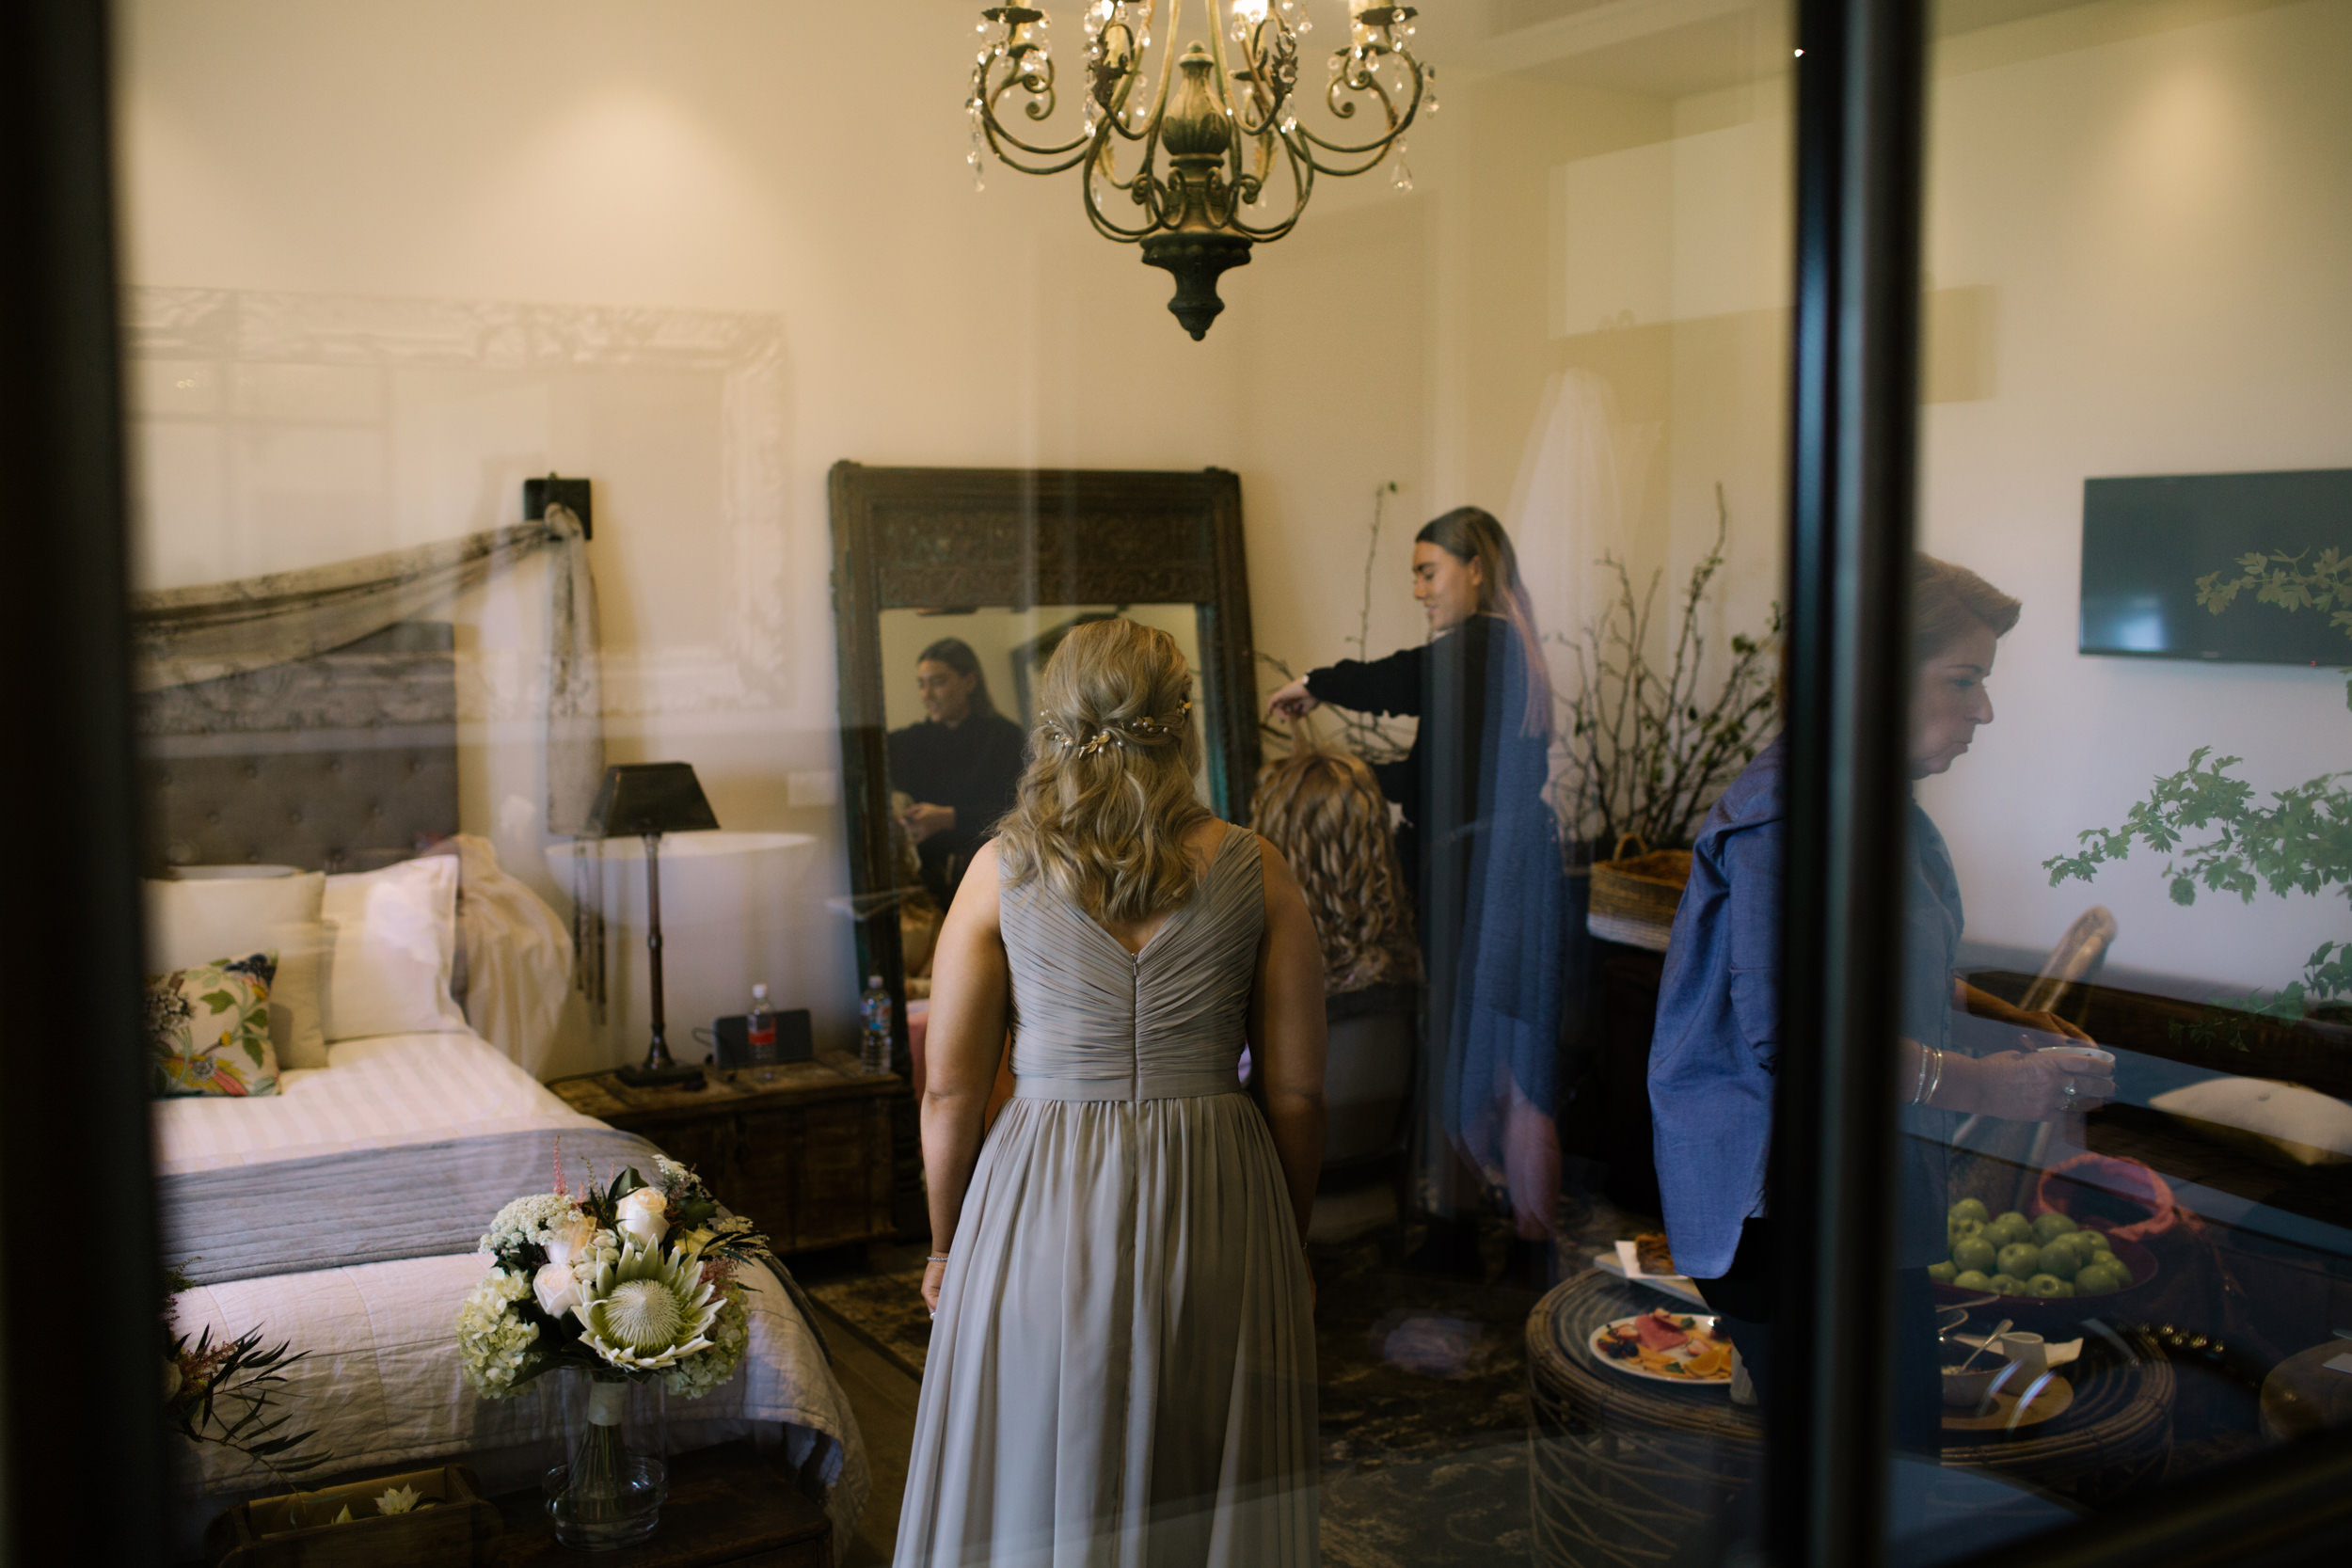 I-Got-You-Babe-&.Co.-Stones-of-the-Yarra-Valley-Wedding-Beverly-Ross0007.JPG